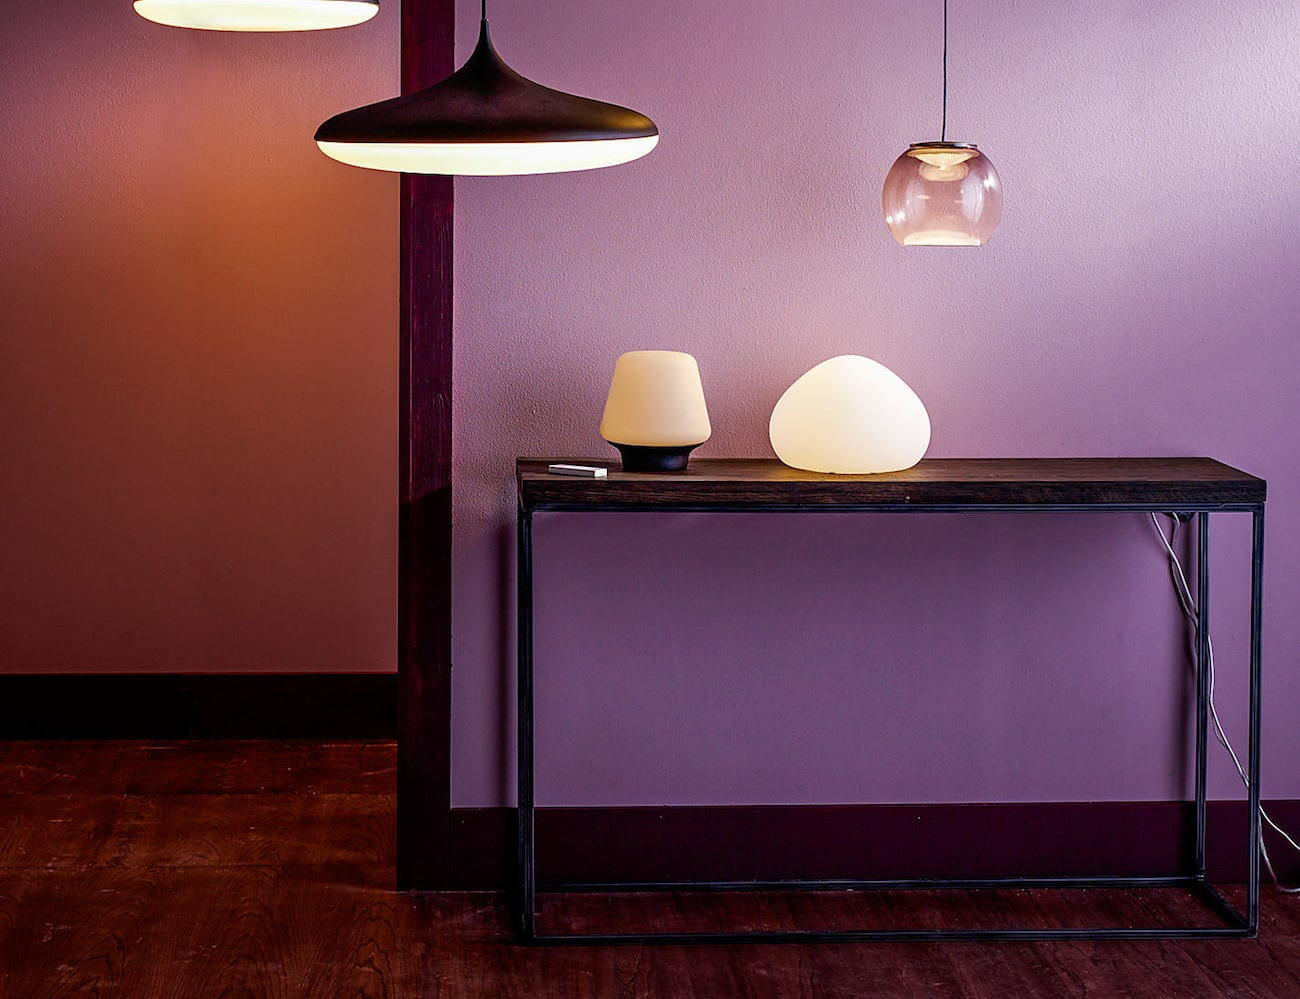 Philips hue wellner dimmable smart led table lamp gadget flow philips hue wellner dimmable smart led table lamp geotapseo Images